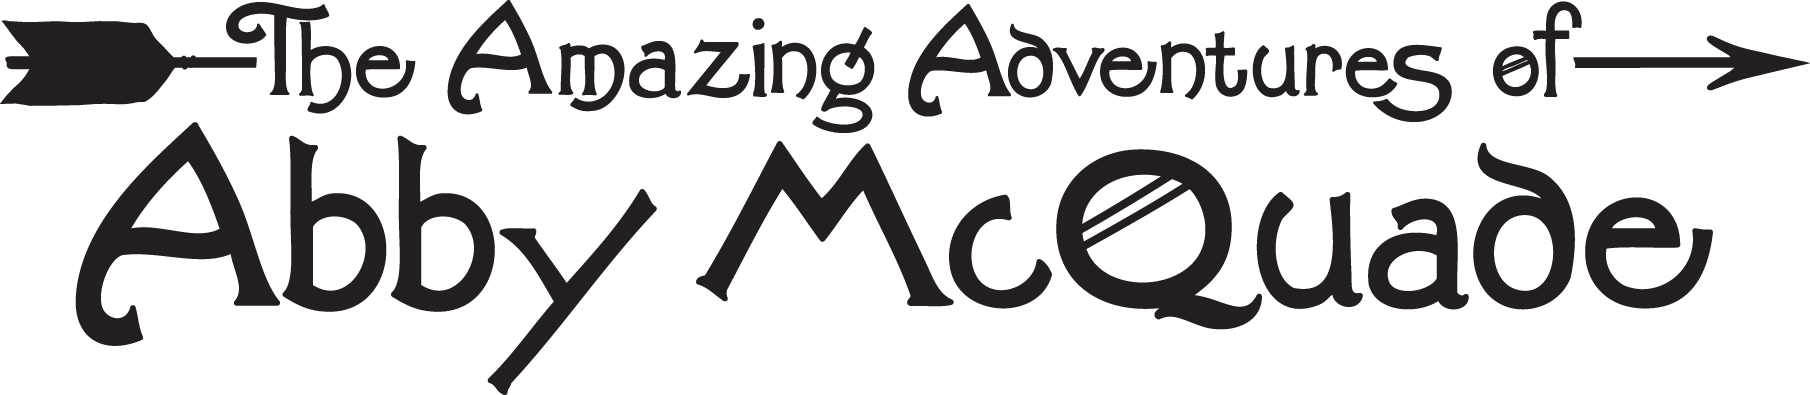 the-amazing-adventures-of-abby-mcquade-logo-bw-02.jpg